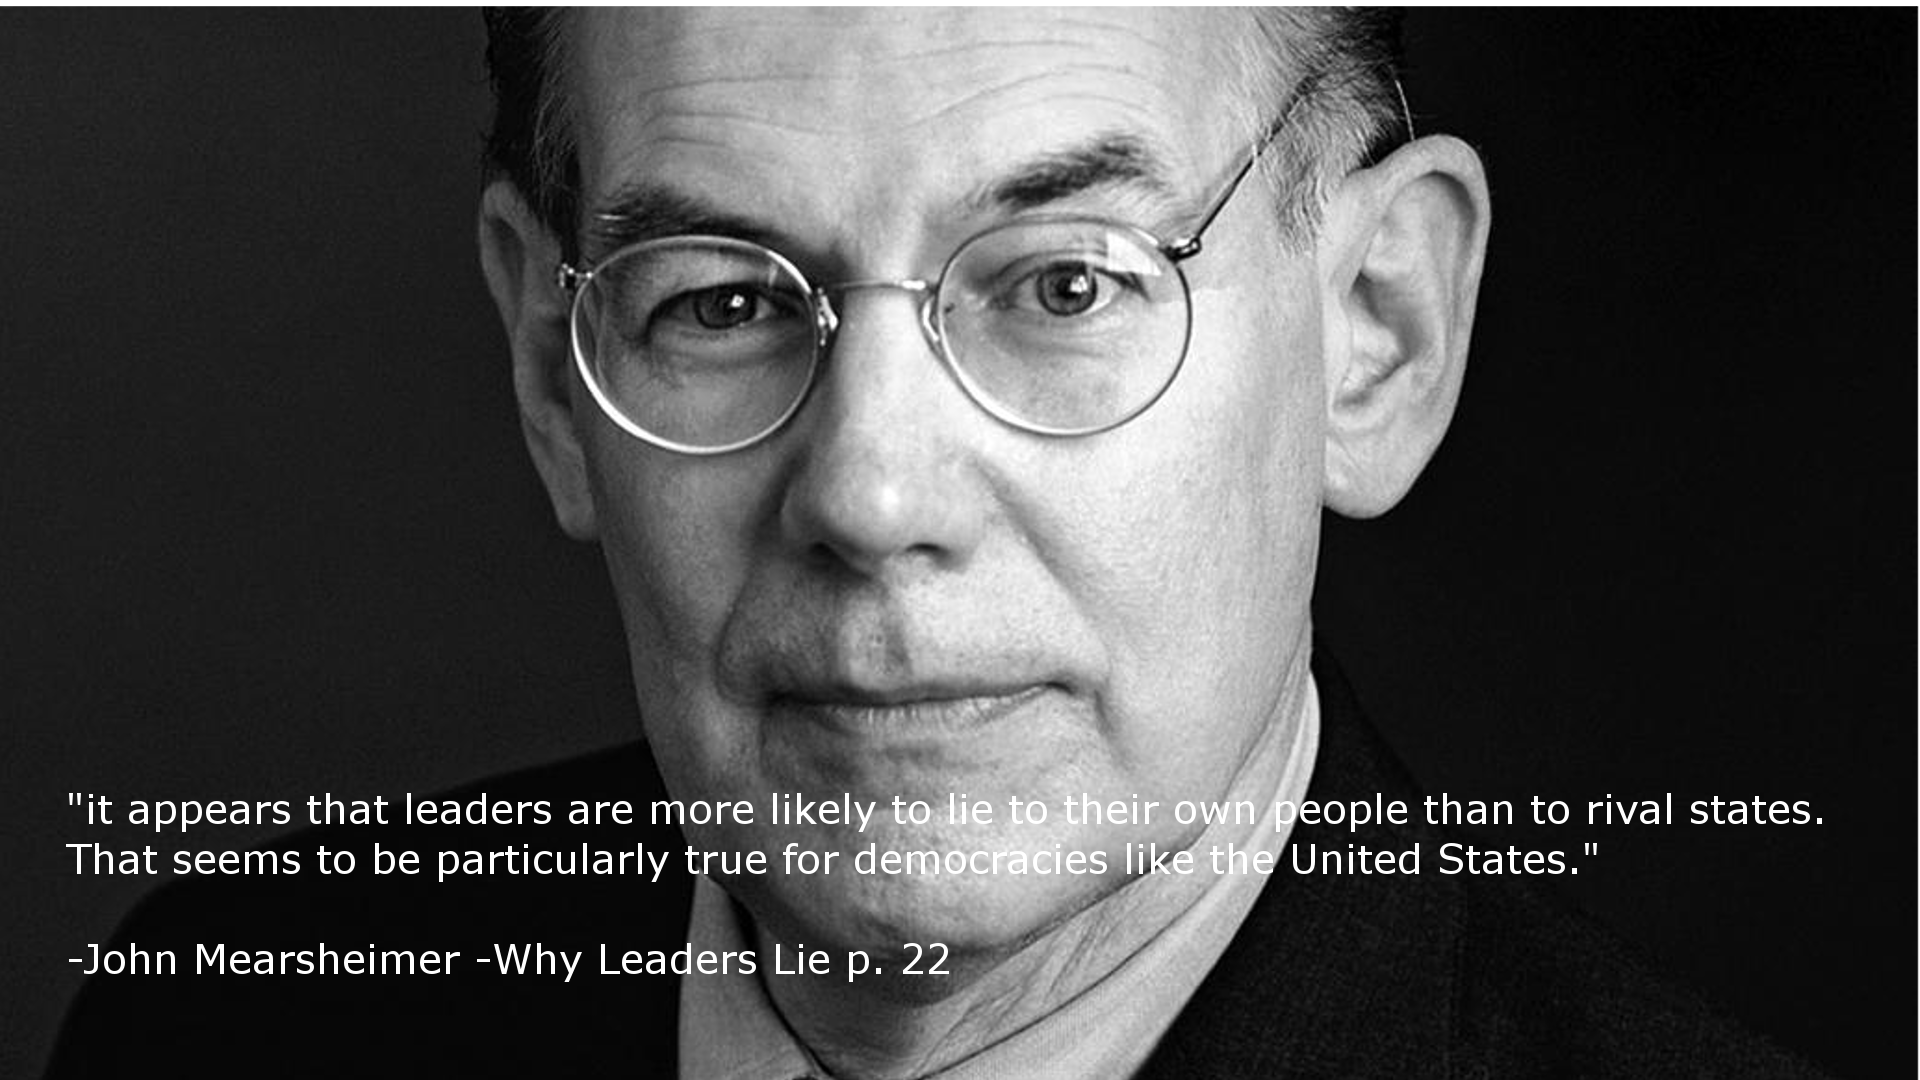 """it appears that leaders are more likely to lie to their own people than to rival states. That seems to be particularly true for democracies like the United States."" -John Mearsheimer [1920-1080] [OC]"